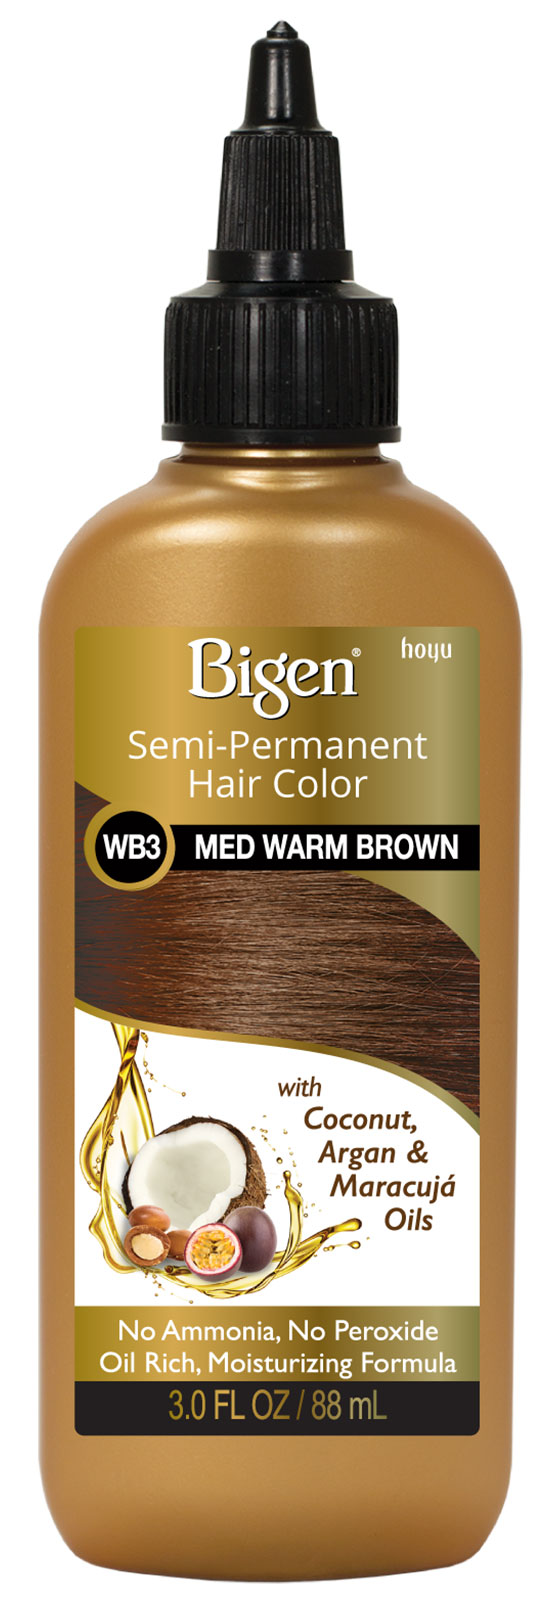 02006-Med. Warm Brown